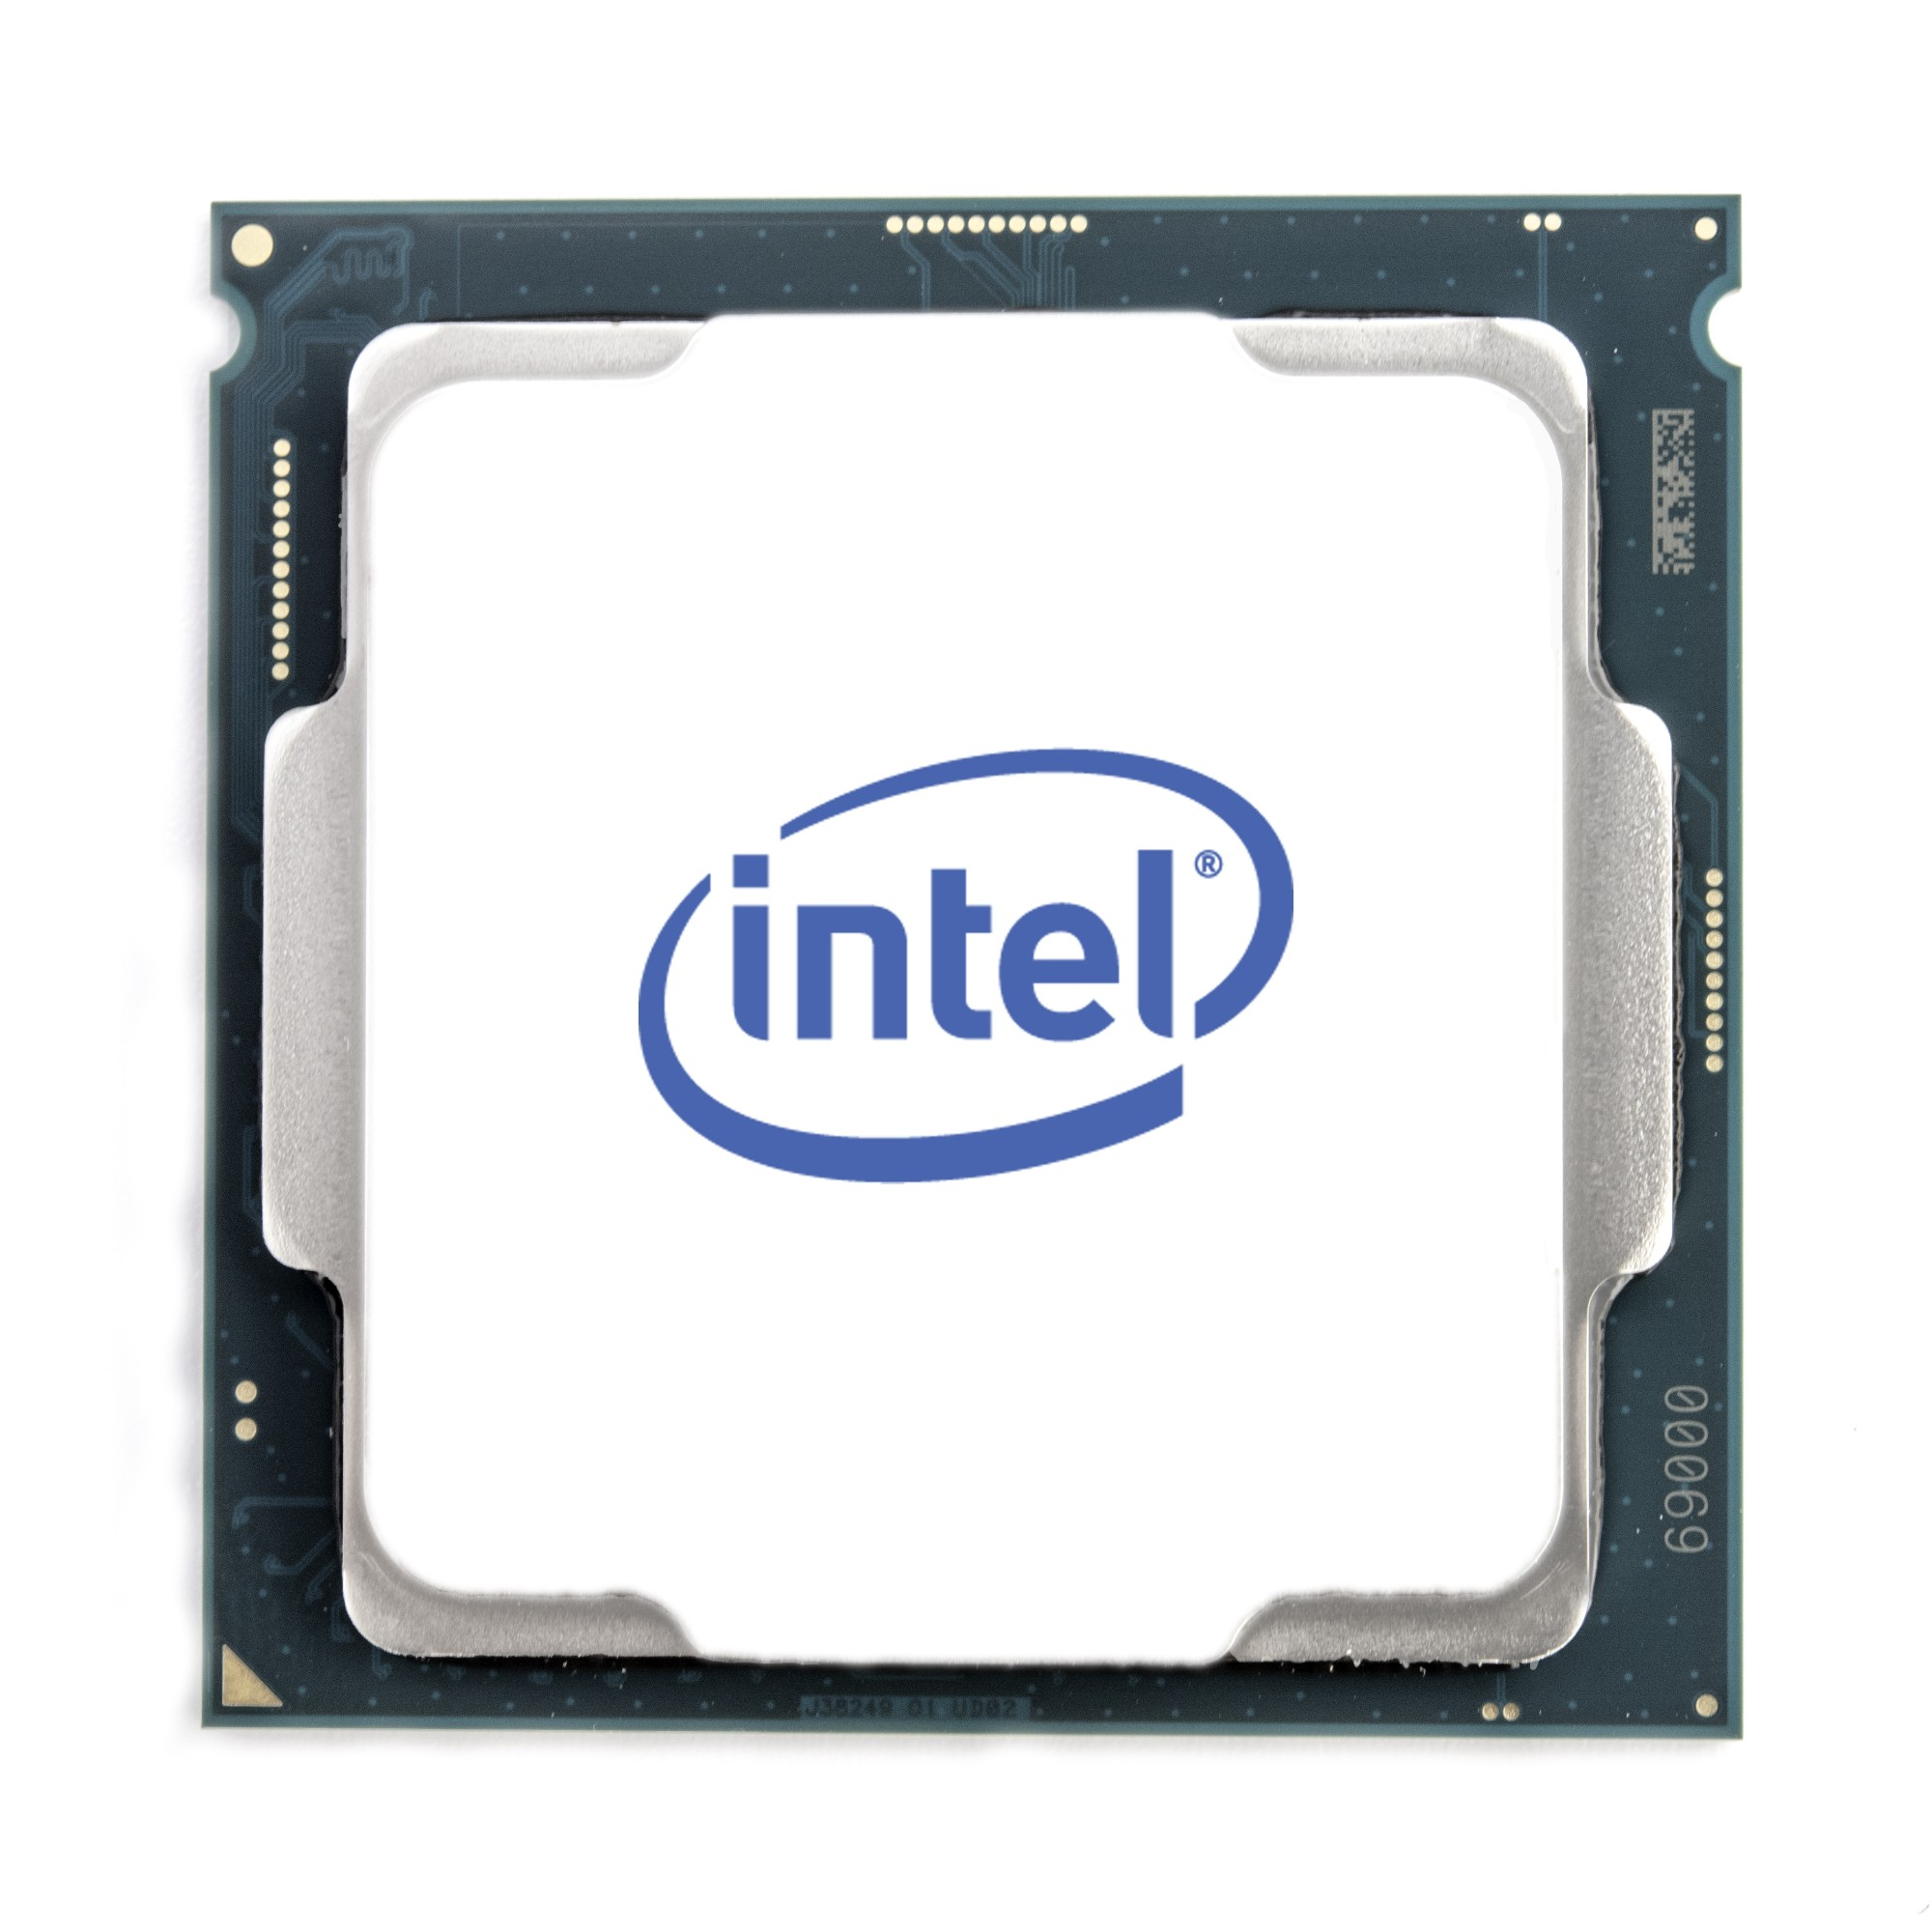 Intel Xeon 8268 processor 2.9 GHz 35.75 MB